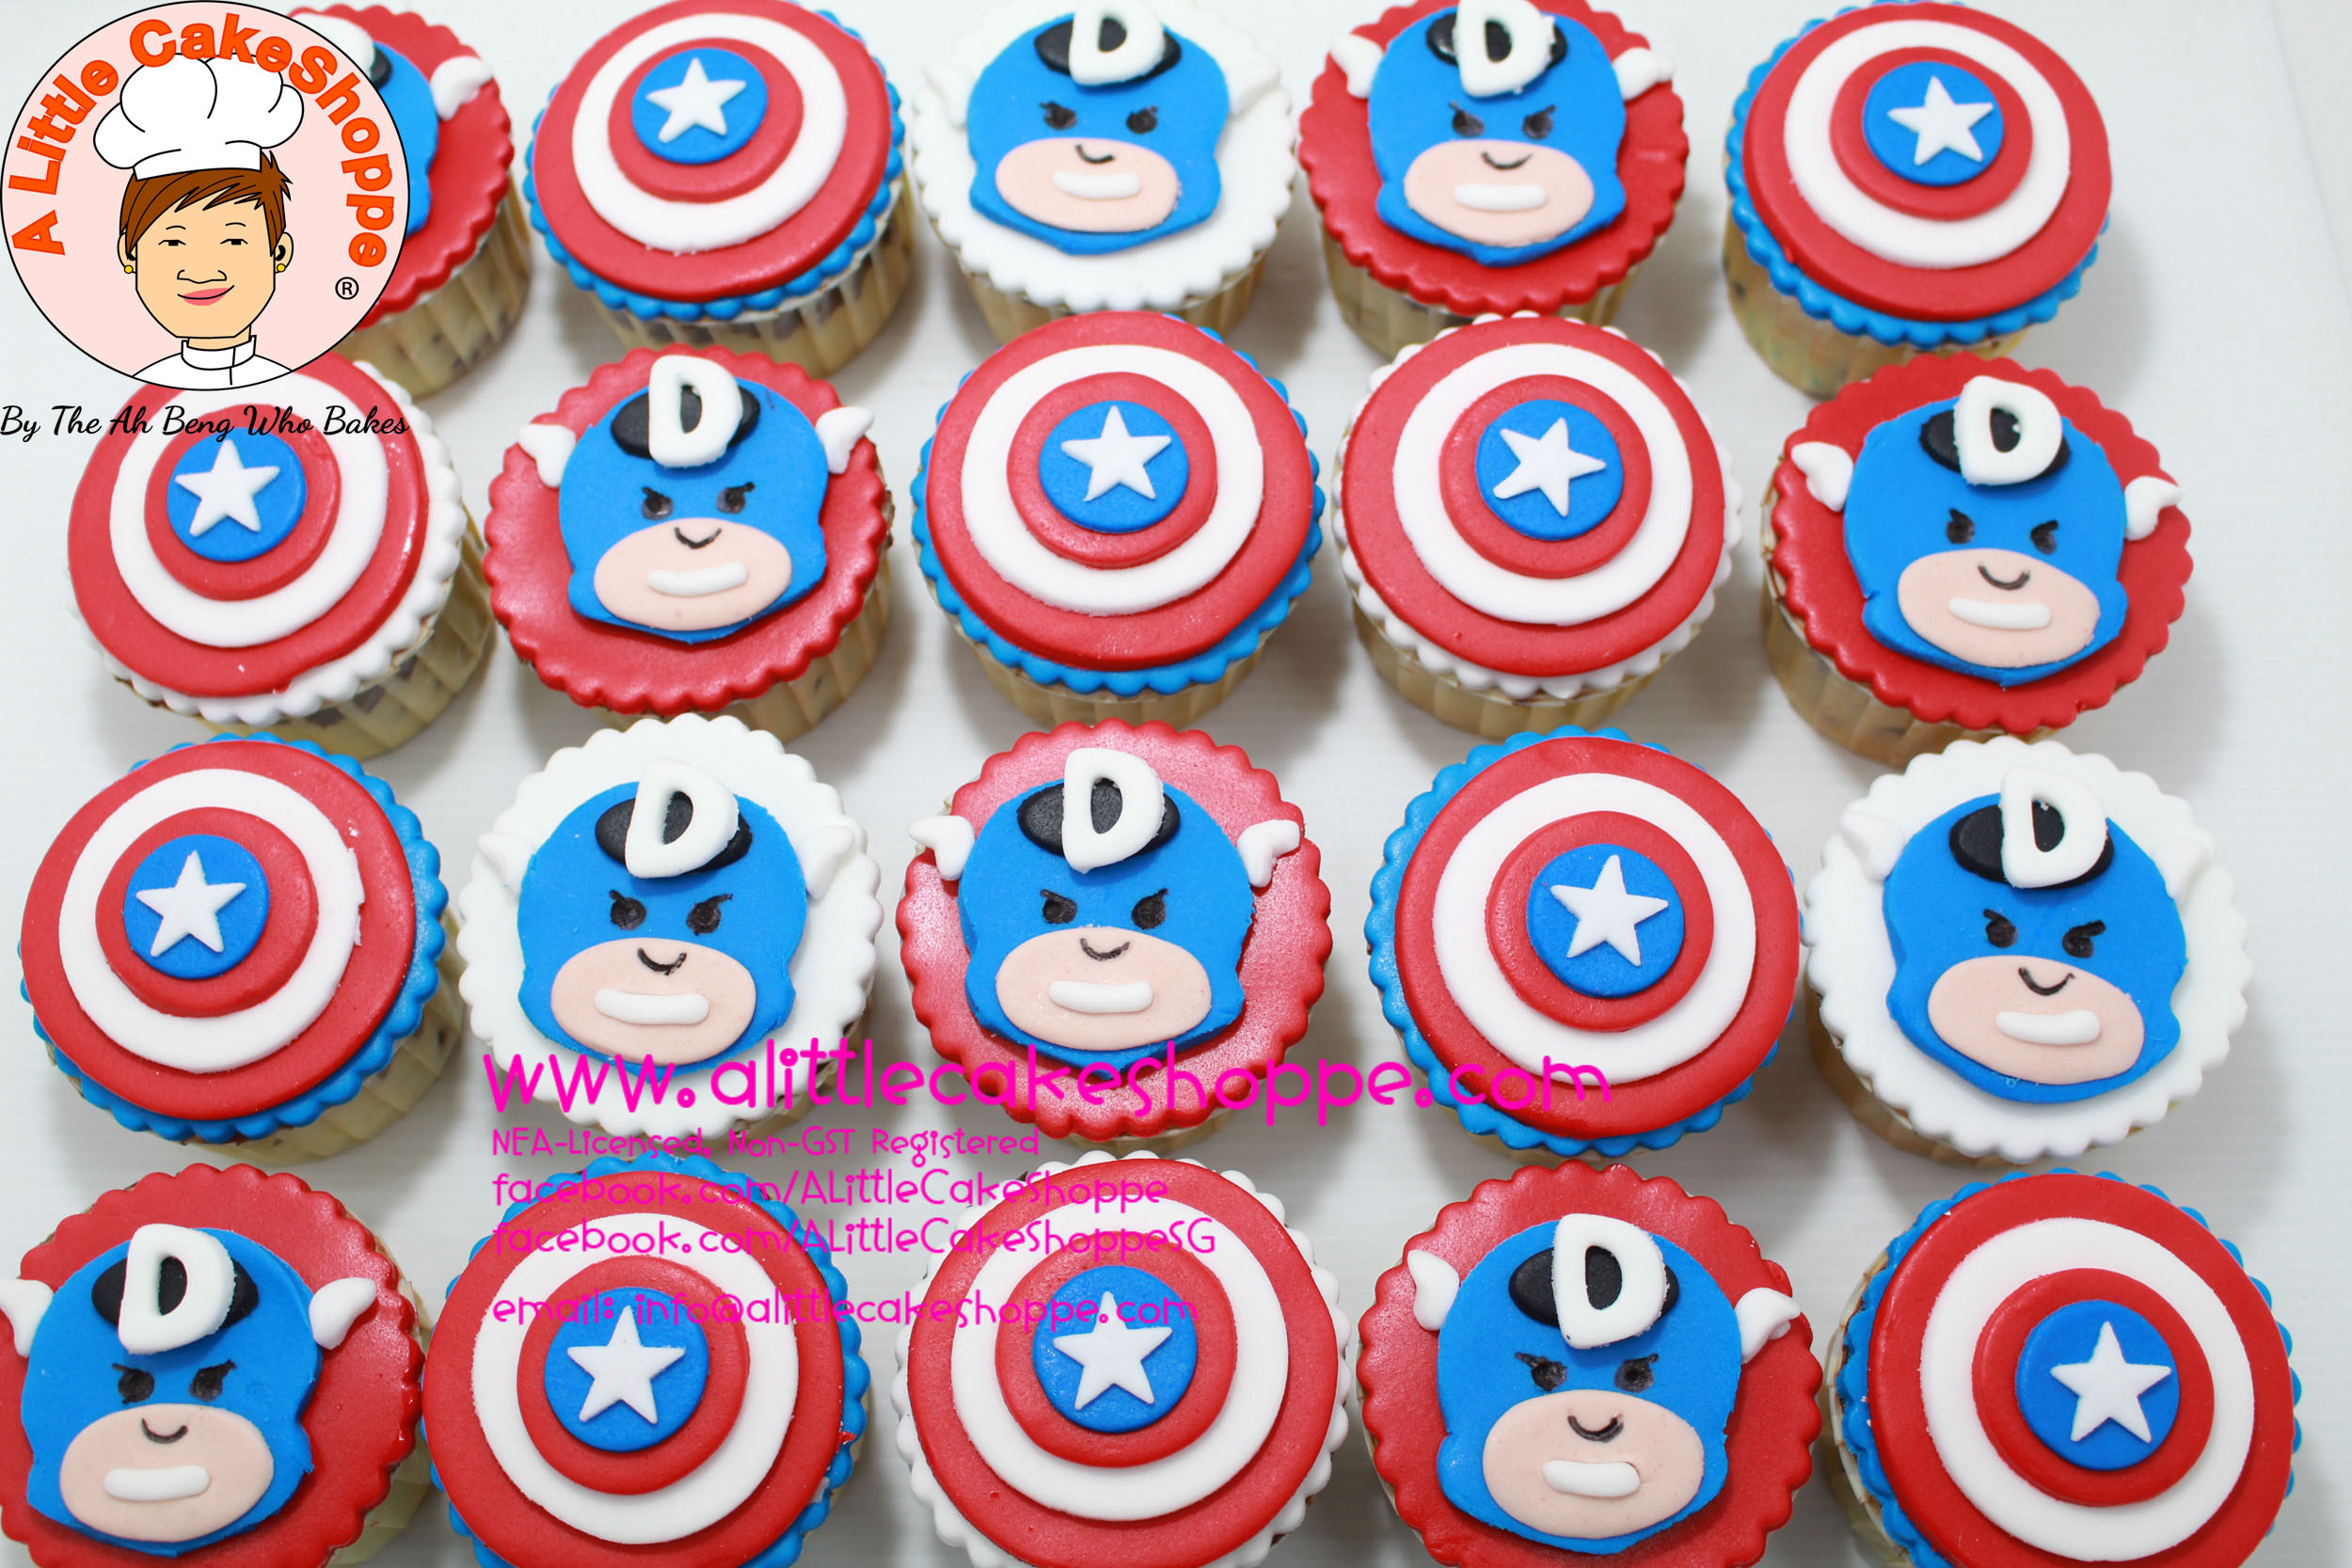 Best Customised Cake Shop Singapore custom cake 2D 3D birthday cake cupcakes desserts wedding corporate events anniversary 1st birthday 21st birthday fondant fresh cream buttercream cakes alittlecakeshoppe a little cake shoppe compliments review singapore bakers SG cake shop cakeshop ah beng who bakes avengers superhero dc hero captain america